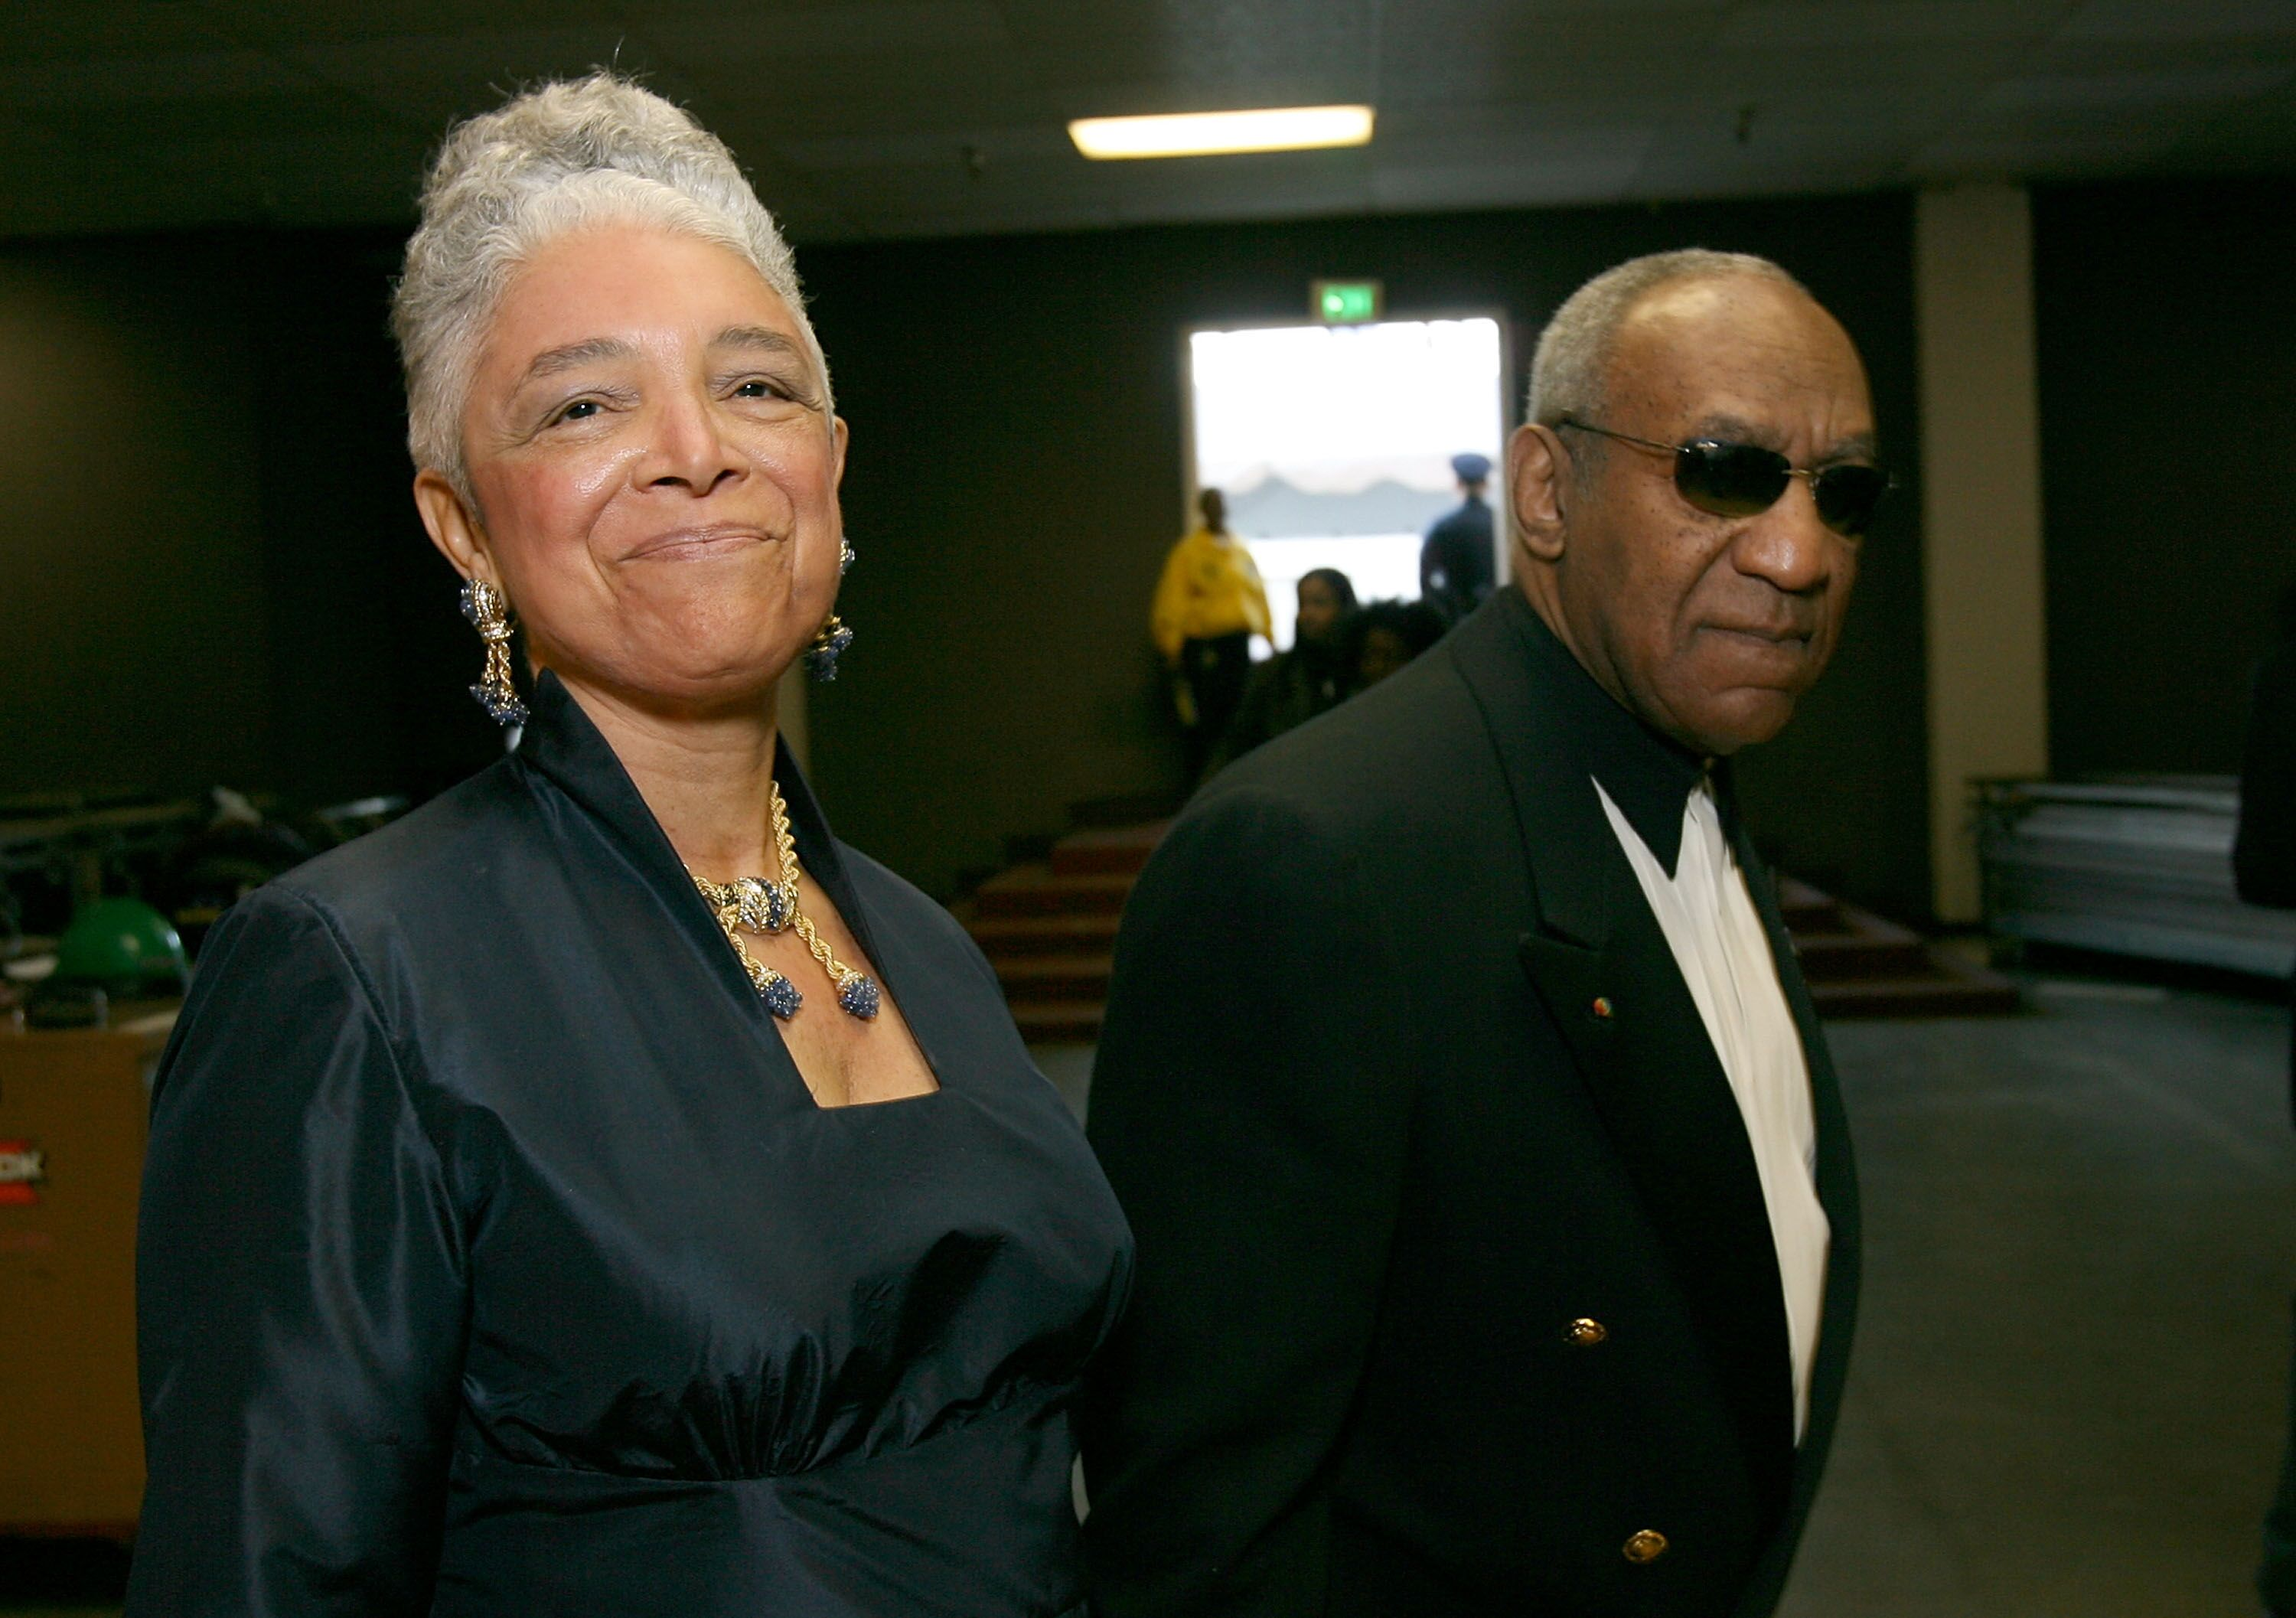 Bill Cosby and wife Camille Cosby at the annual NAACP Image Awards on March 2, 2007 | Source: Getty Images